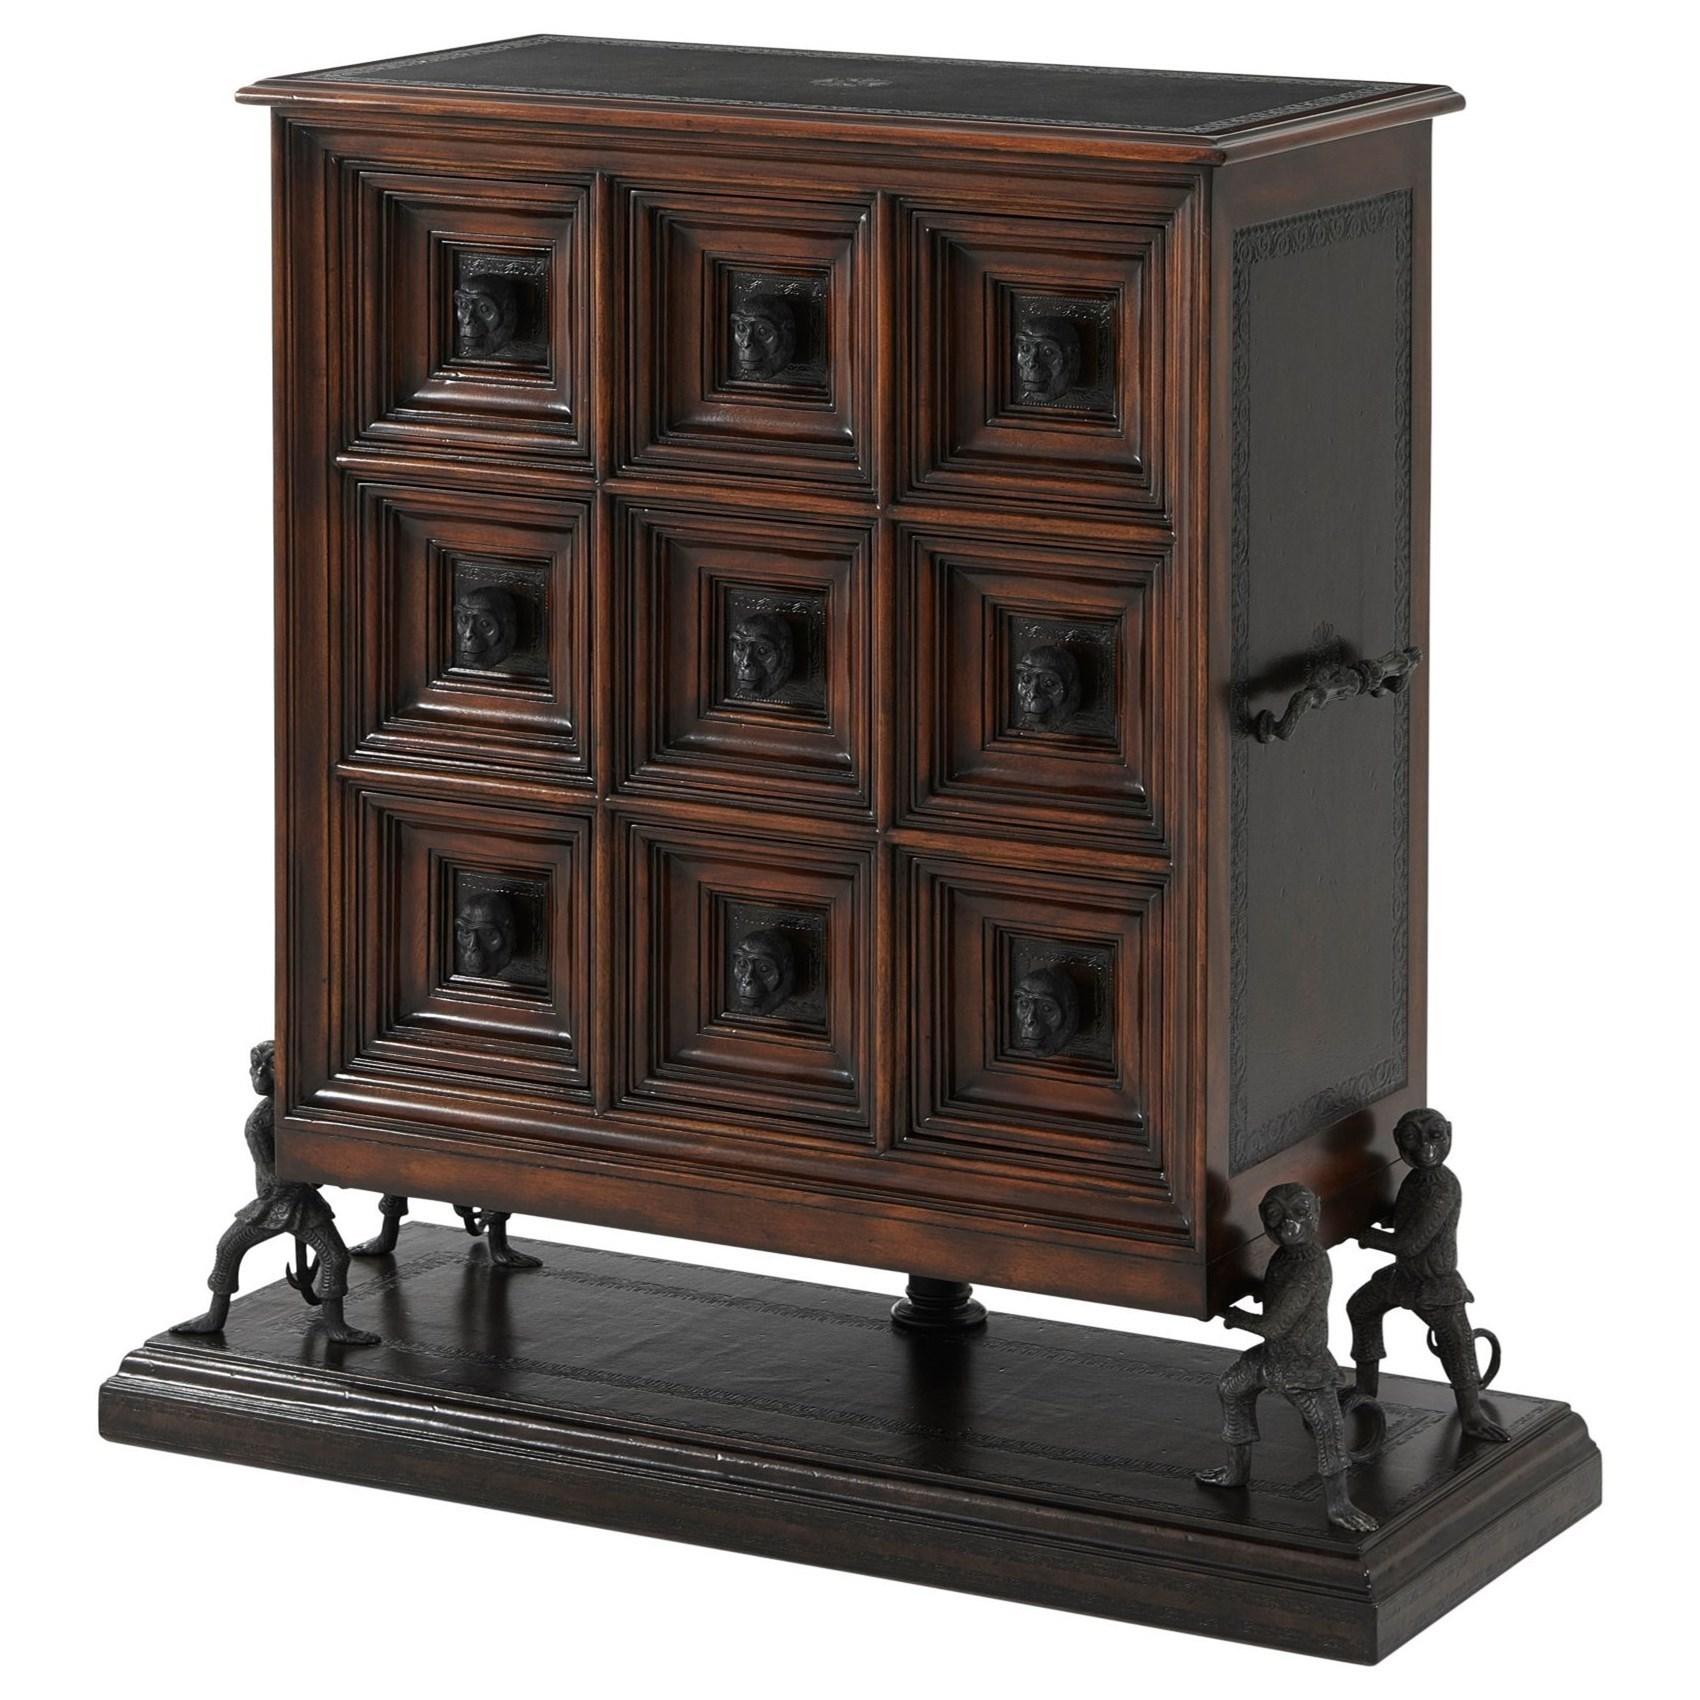 Essential TA The Humorous Chest by Theodore Alexander at Baer's Furniture